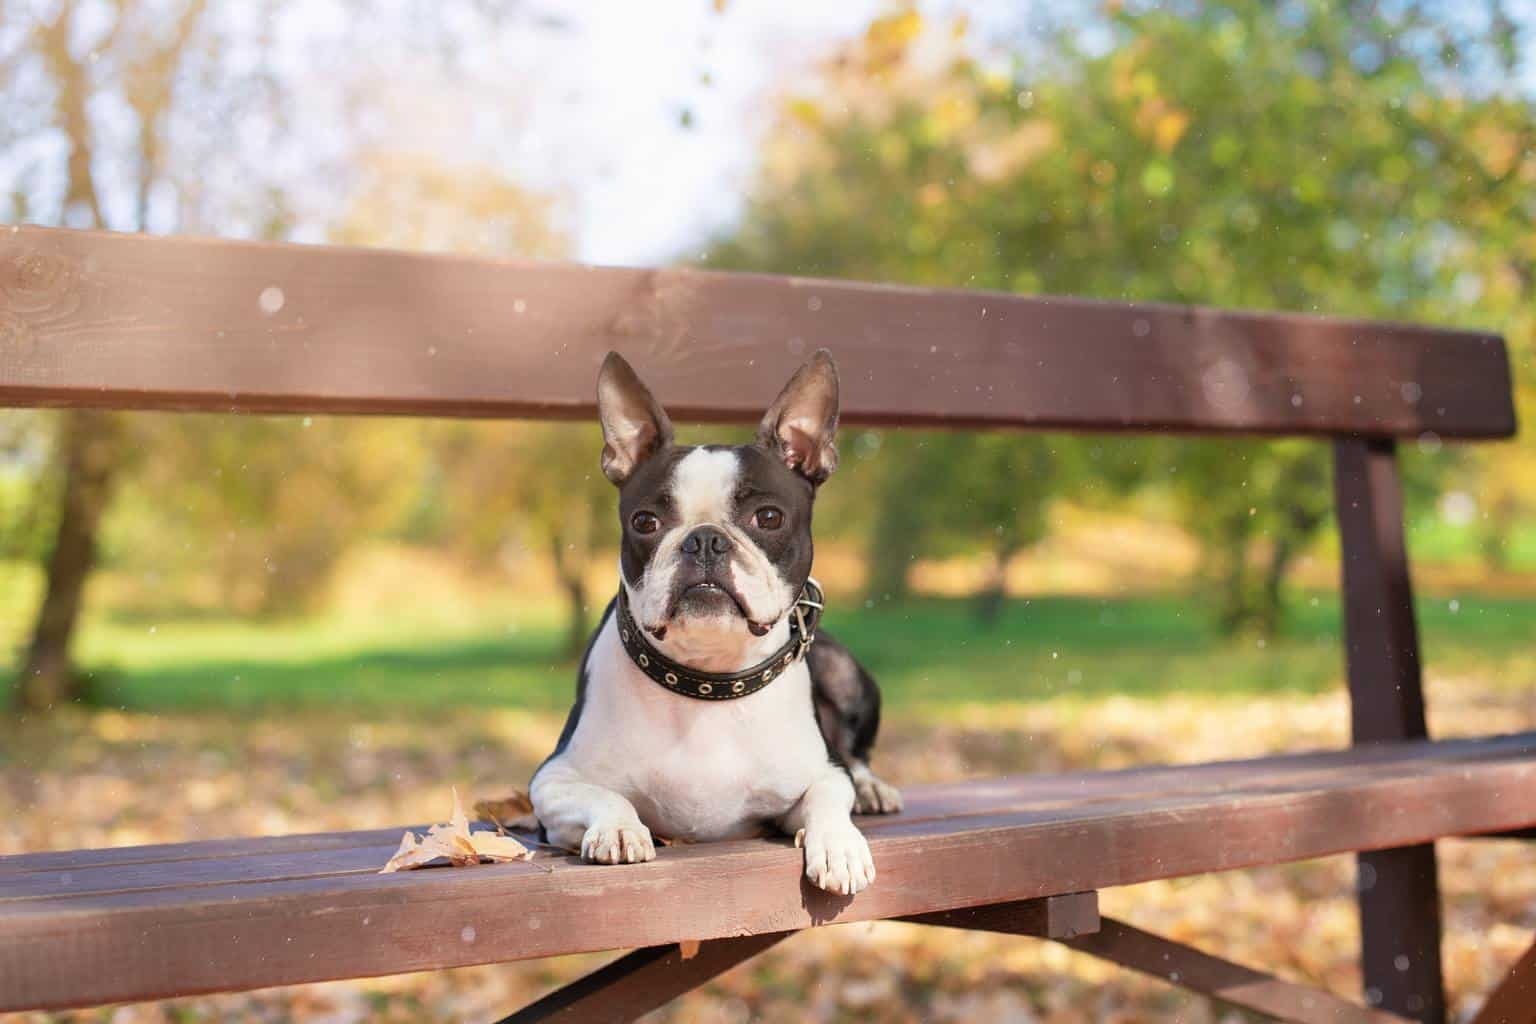 A Boston Terrier dog lies on a wooden bench in a Park in beautiful nature on a Sunny, clear autumn